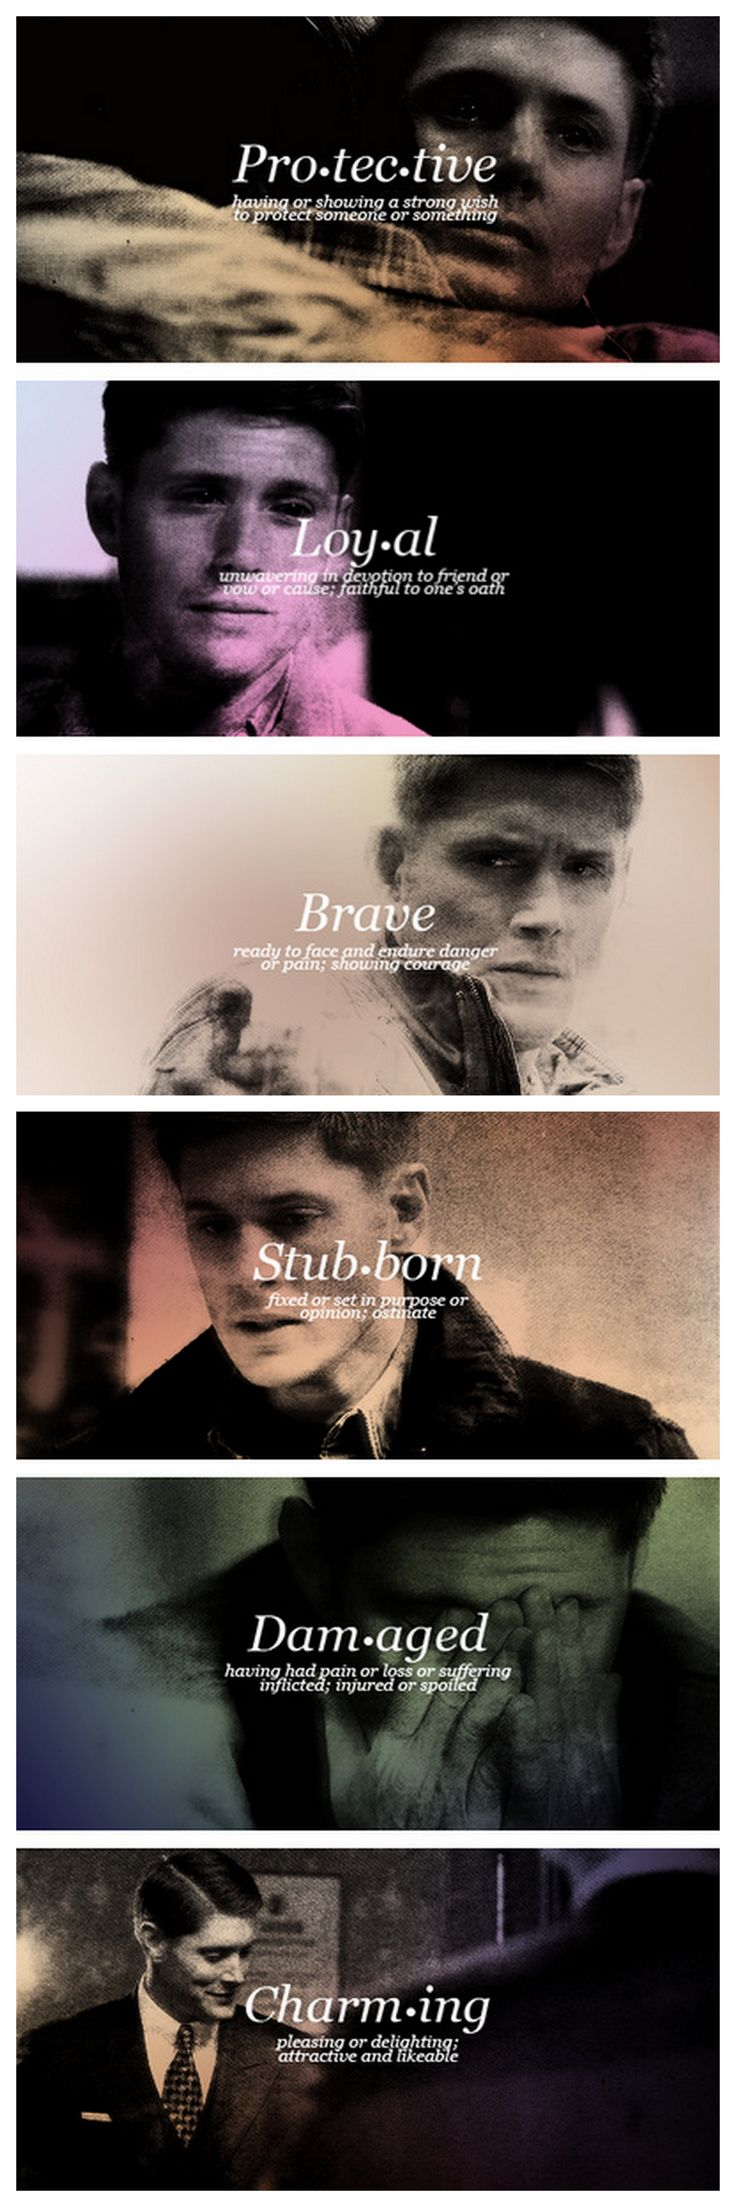 Happy Birthday to our protective, loyal, brave, stubborn, damaged, charming goofball, DEAN WINCHESTER! <3 #Supernatural